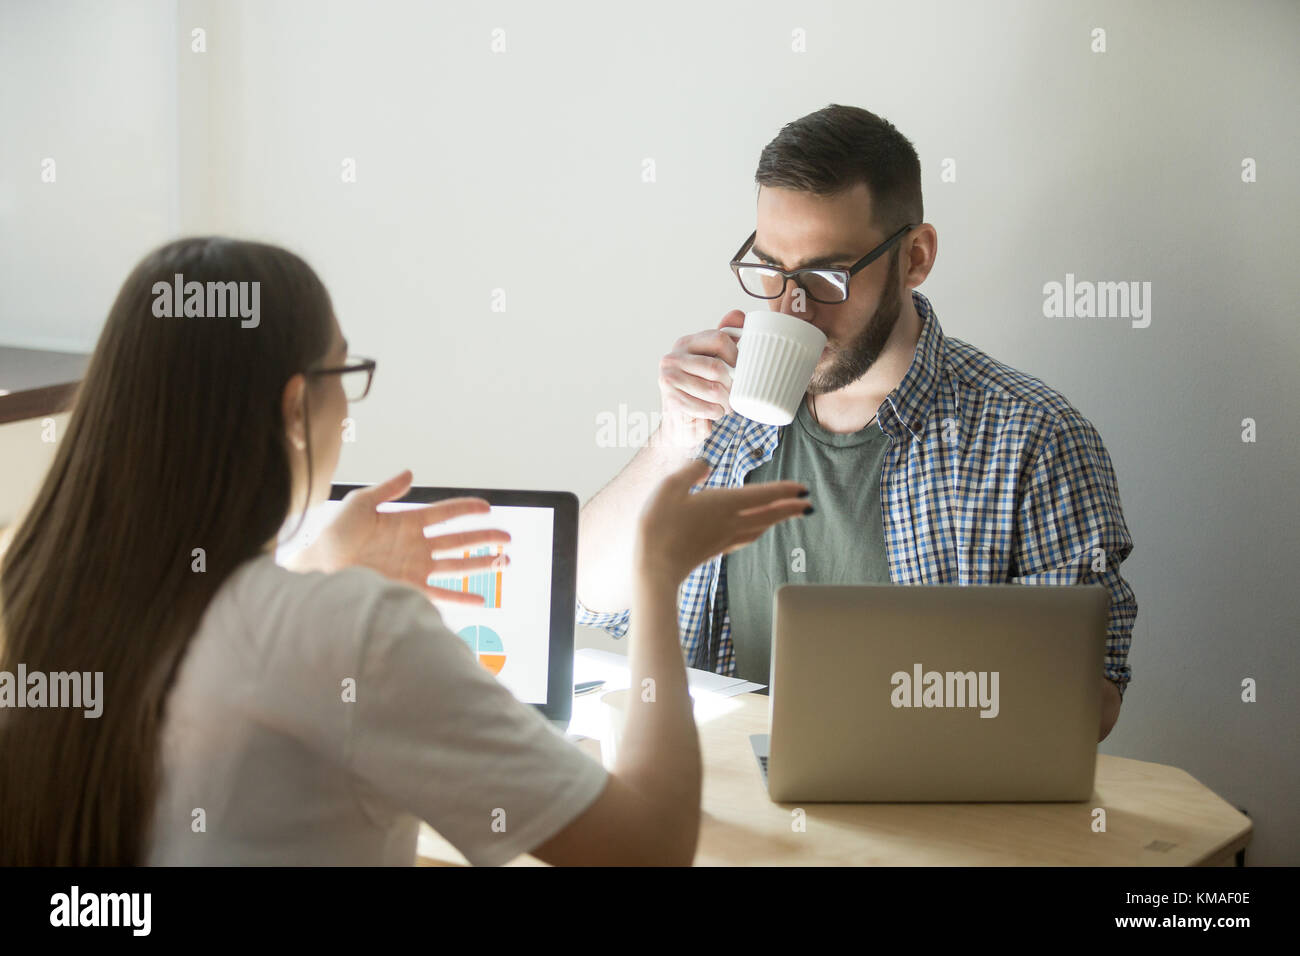 Business meeting of millennial employees. Beautiful businesswoman in glasses explains to coworker concept of job. - Stock Image